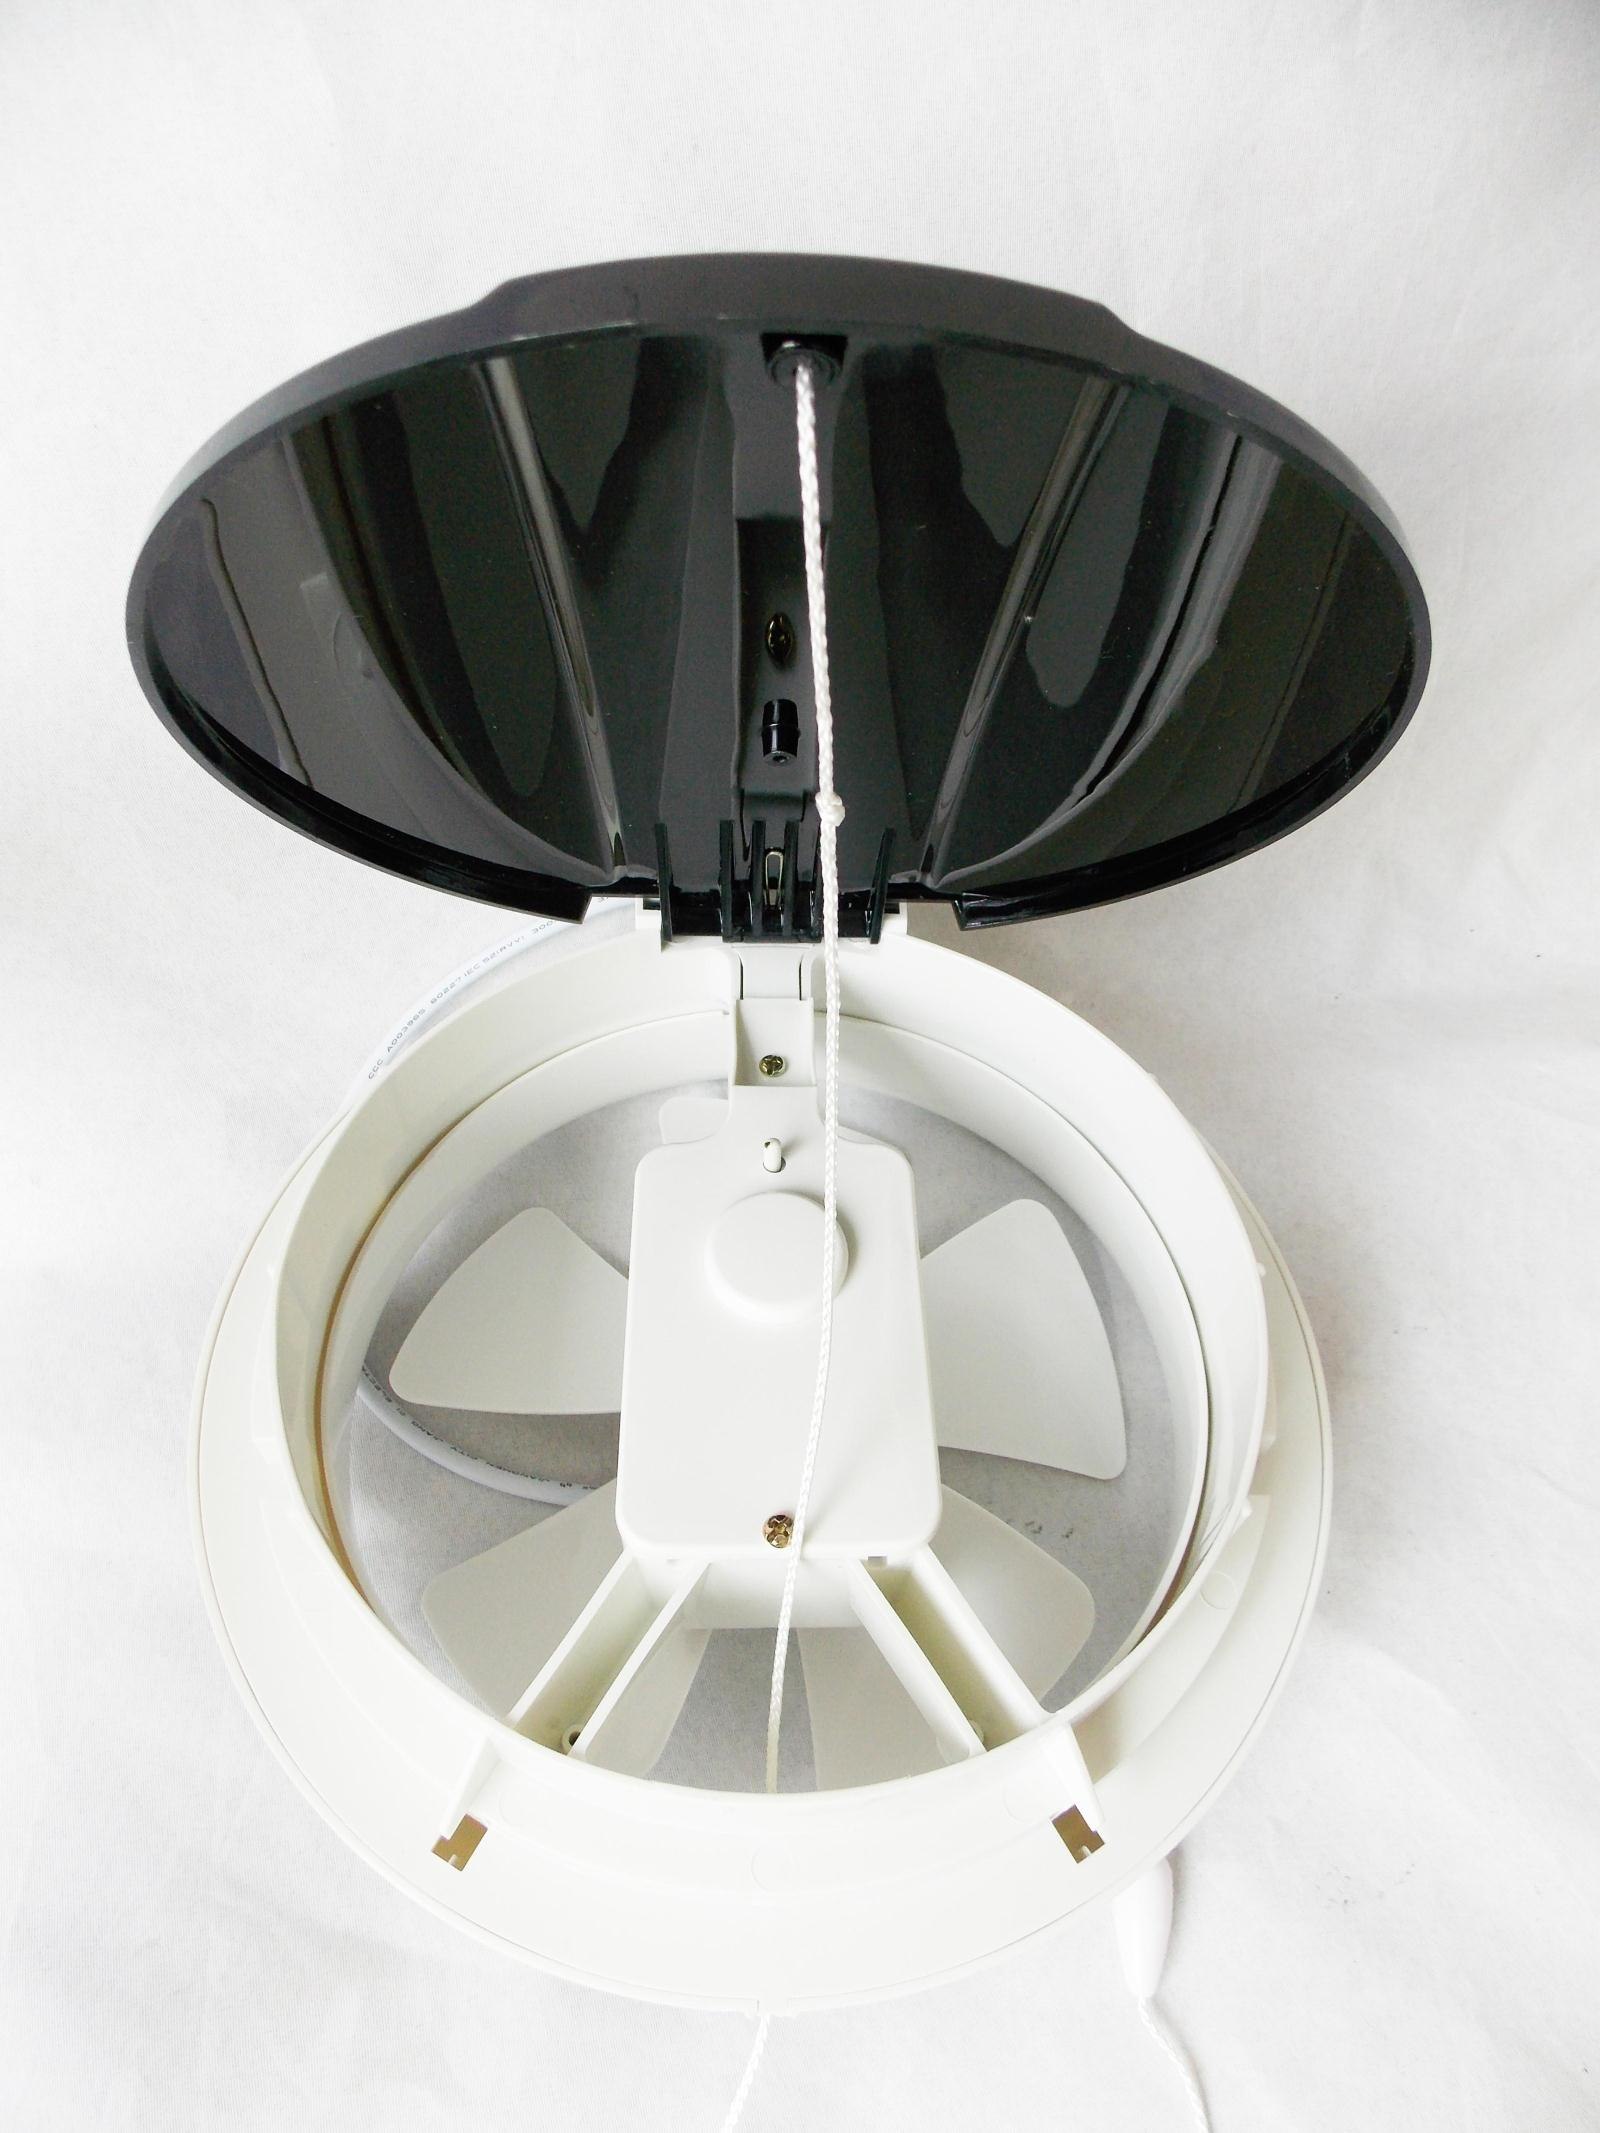 Round glass window exhaust fan exhaust fan bathroom for 7 bathroom exhaust fan